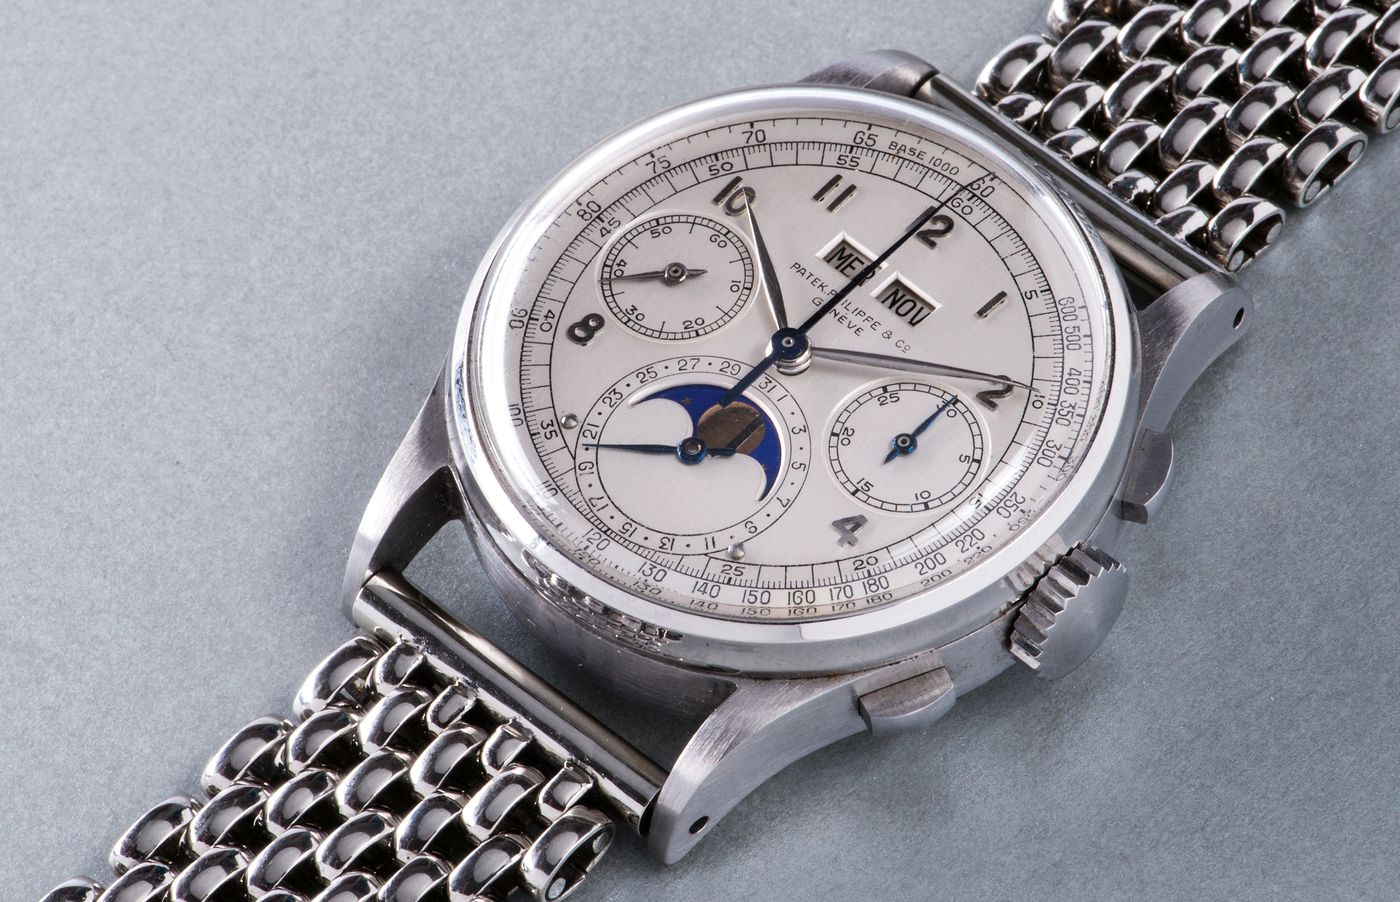 In 1941, Patek Philippe introduced one of the world's most revolutionary and legendary collector's wristwatches, setting the course for their dominance in the world of high-end Swiss watchmaking.